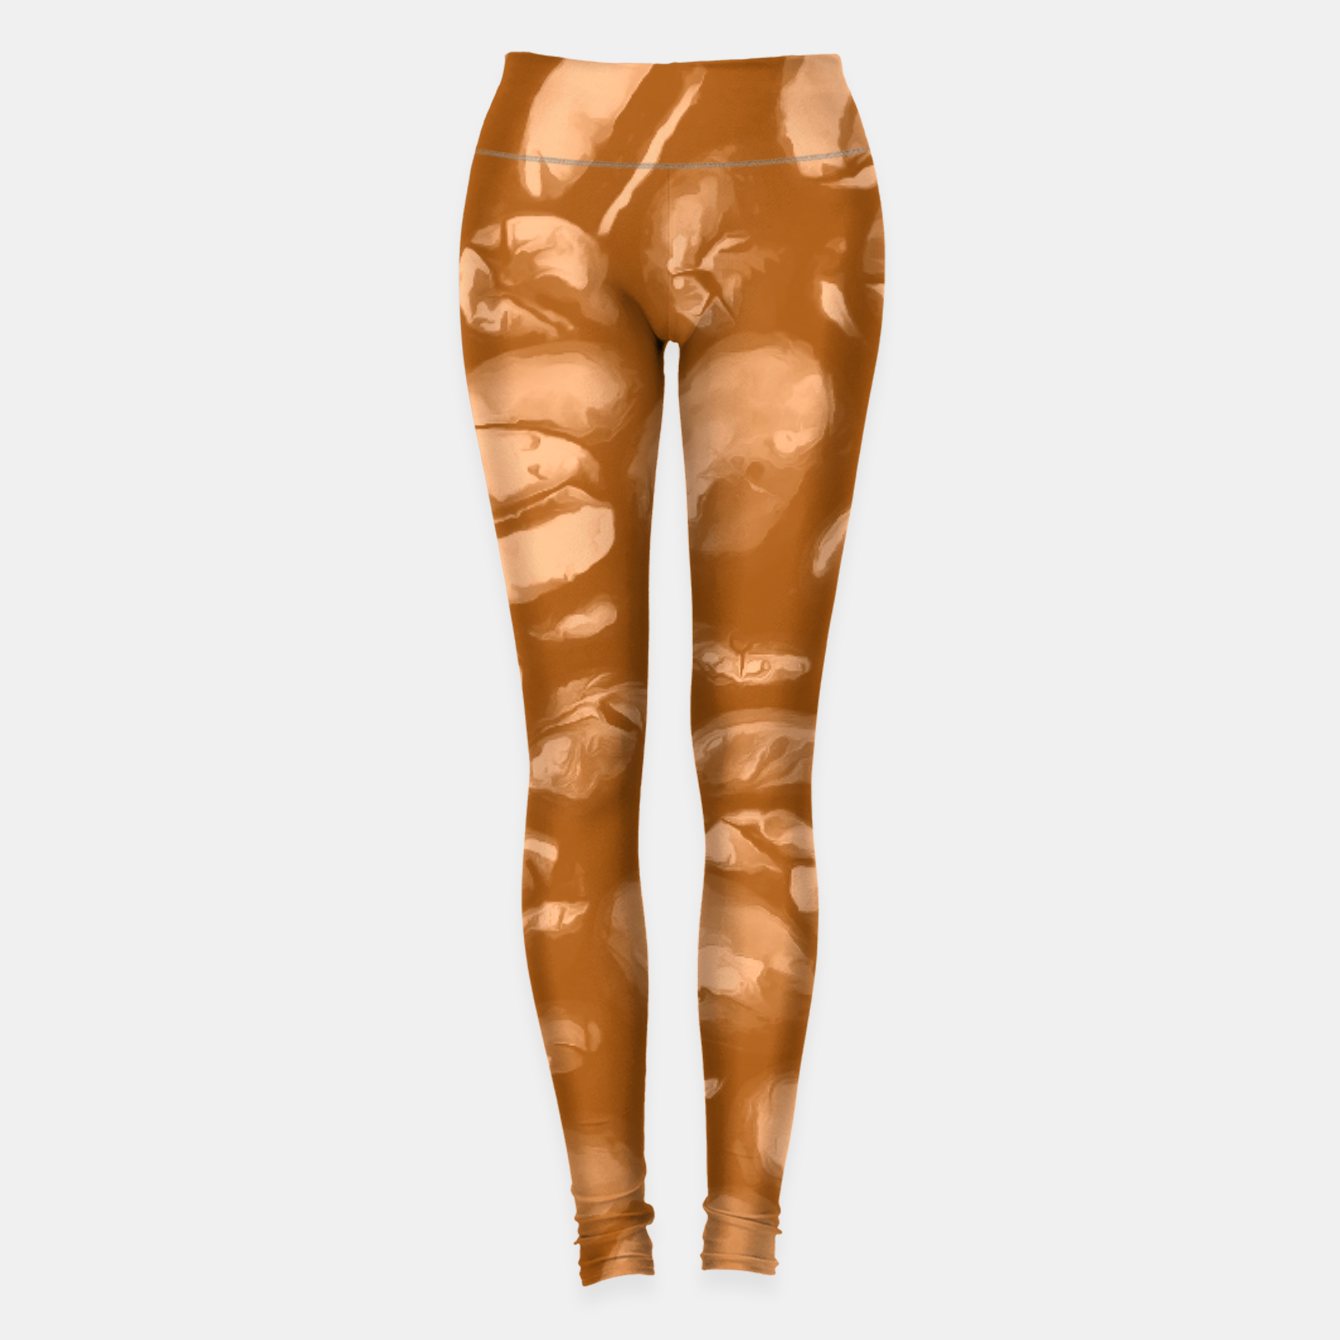 Image of roasted coffee beans texture acrcb Leggings - Live Heroes